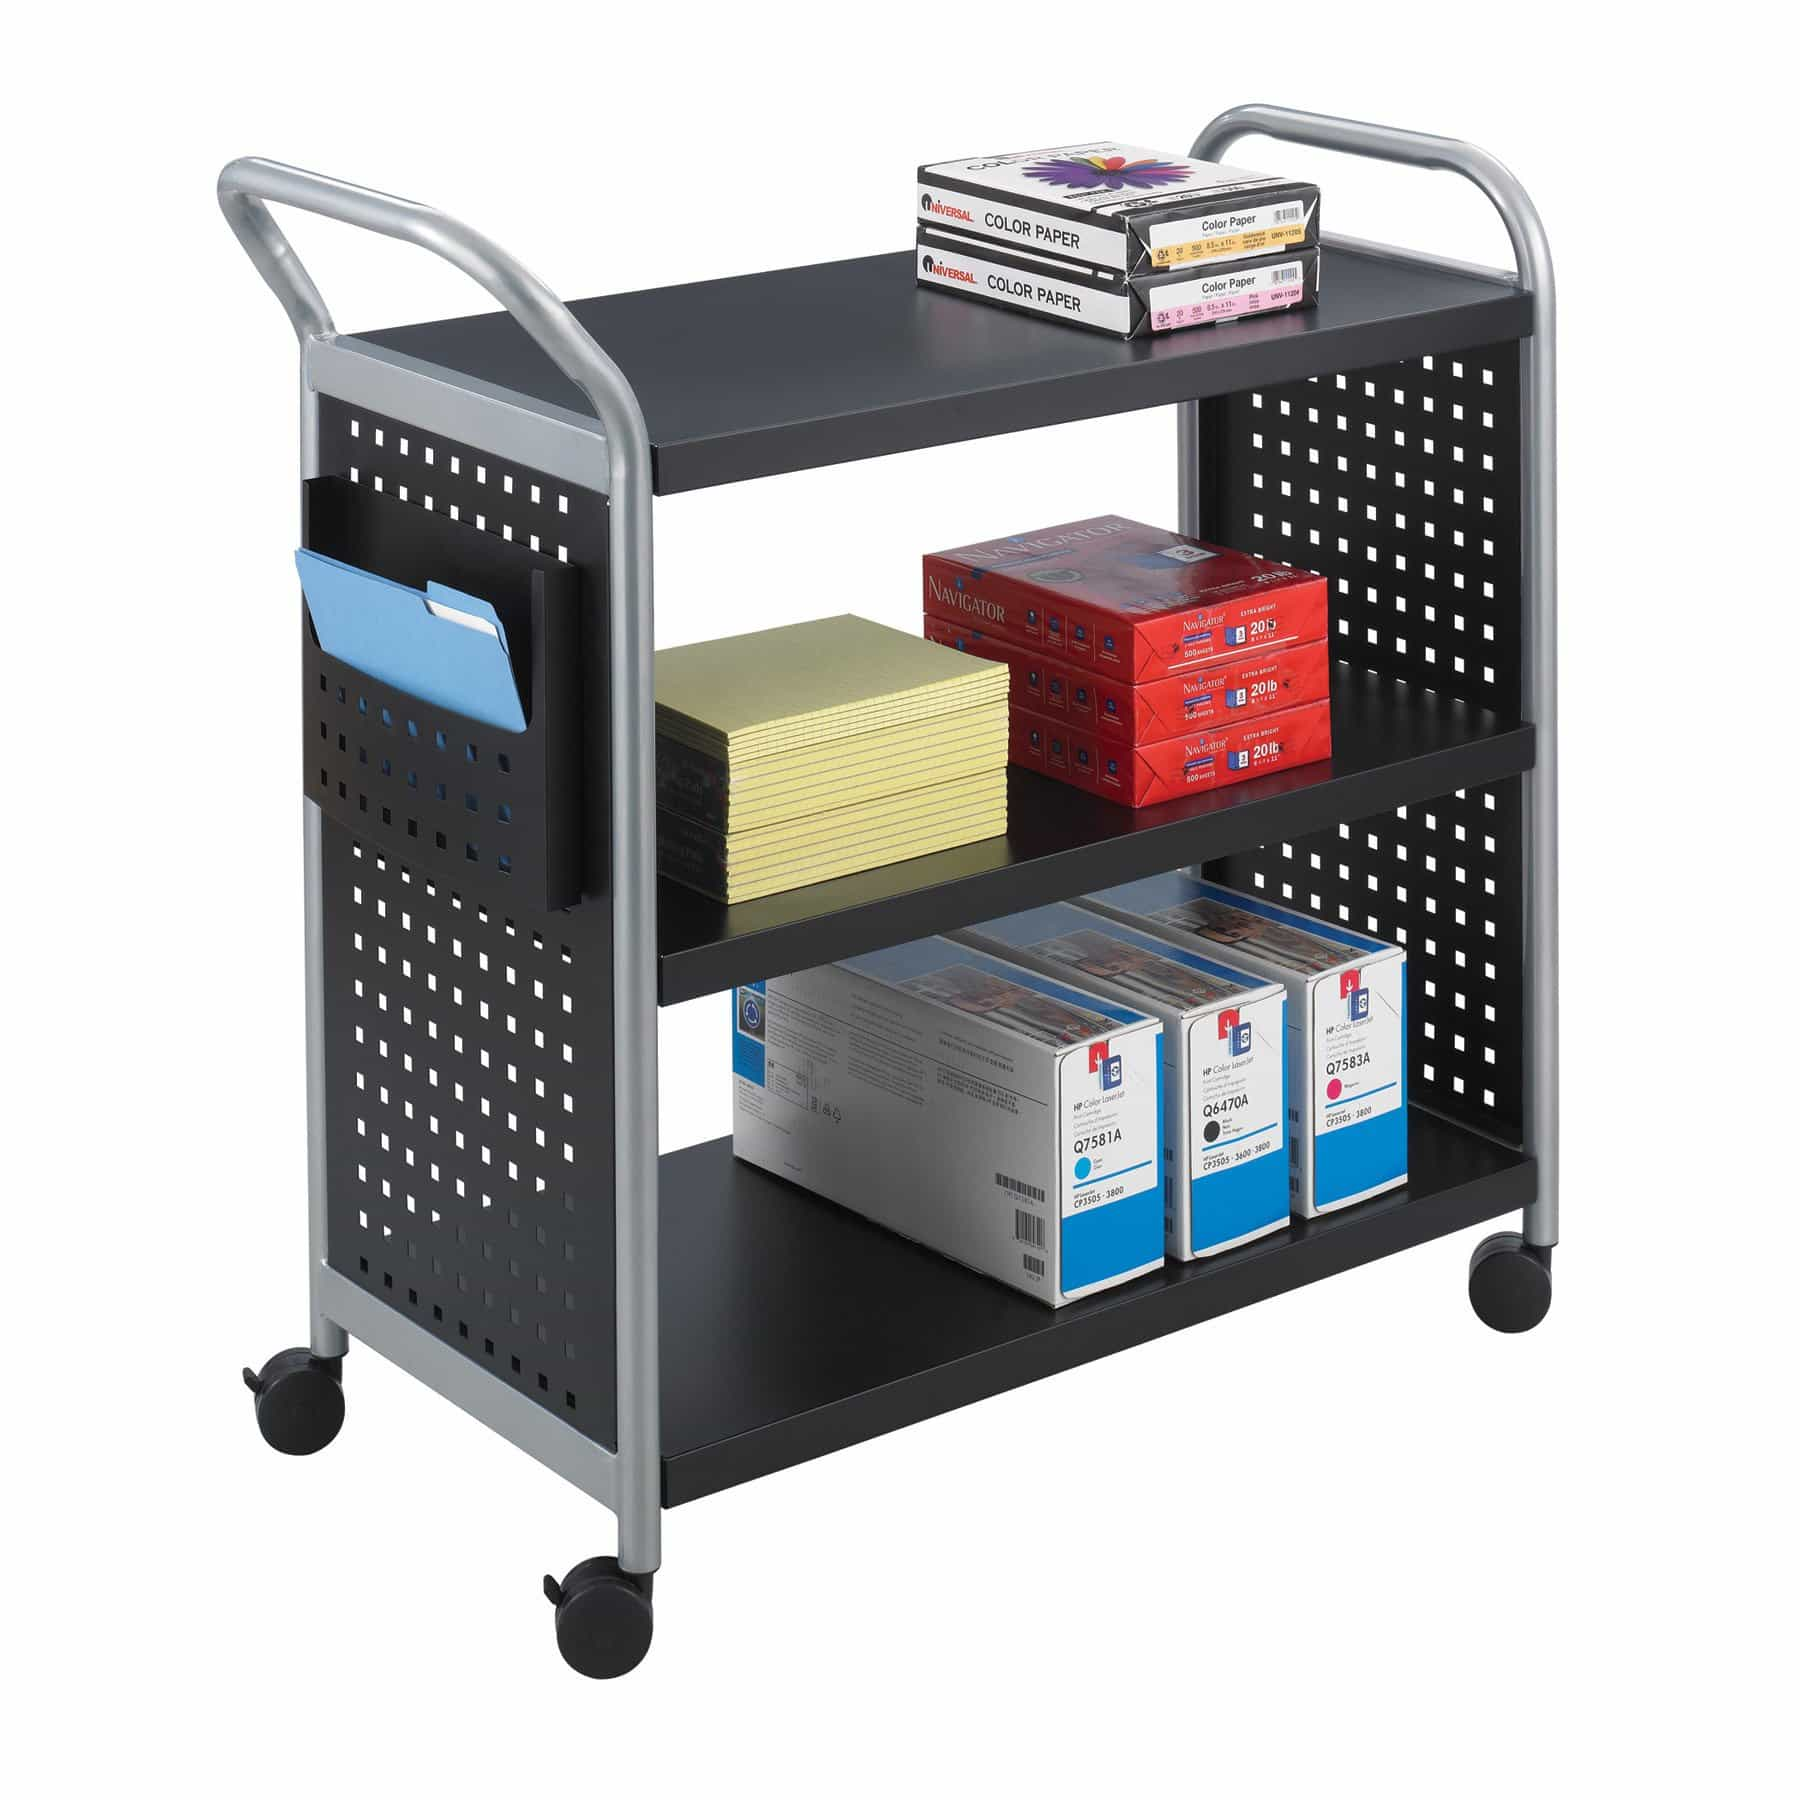 bedinhome - 5339BL Safco black powder coat finish Side pocket Scoot Utility Cart 3 Shelves - Safco - Utility/Book Carts